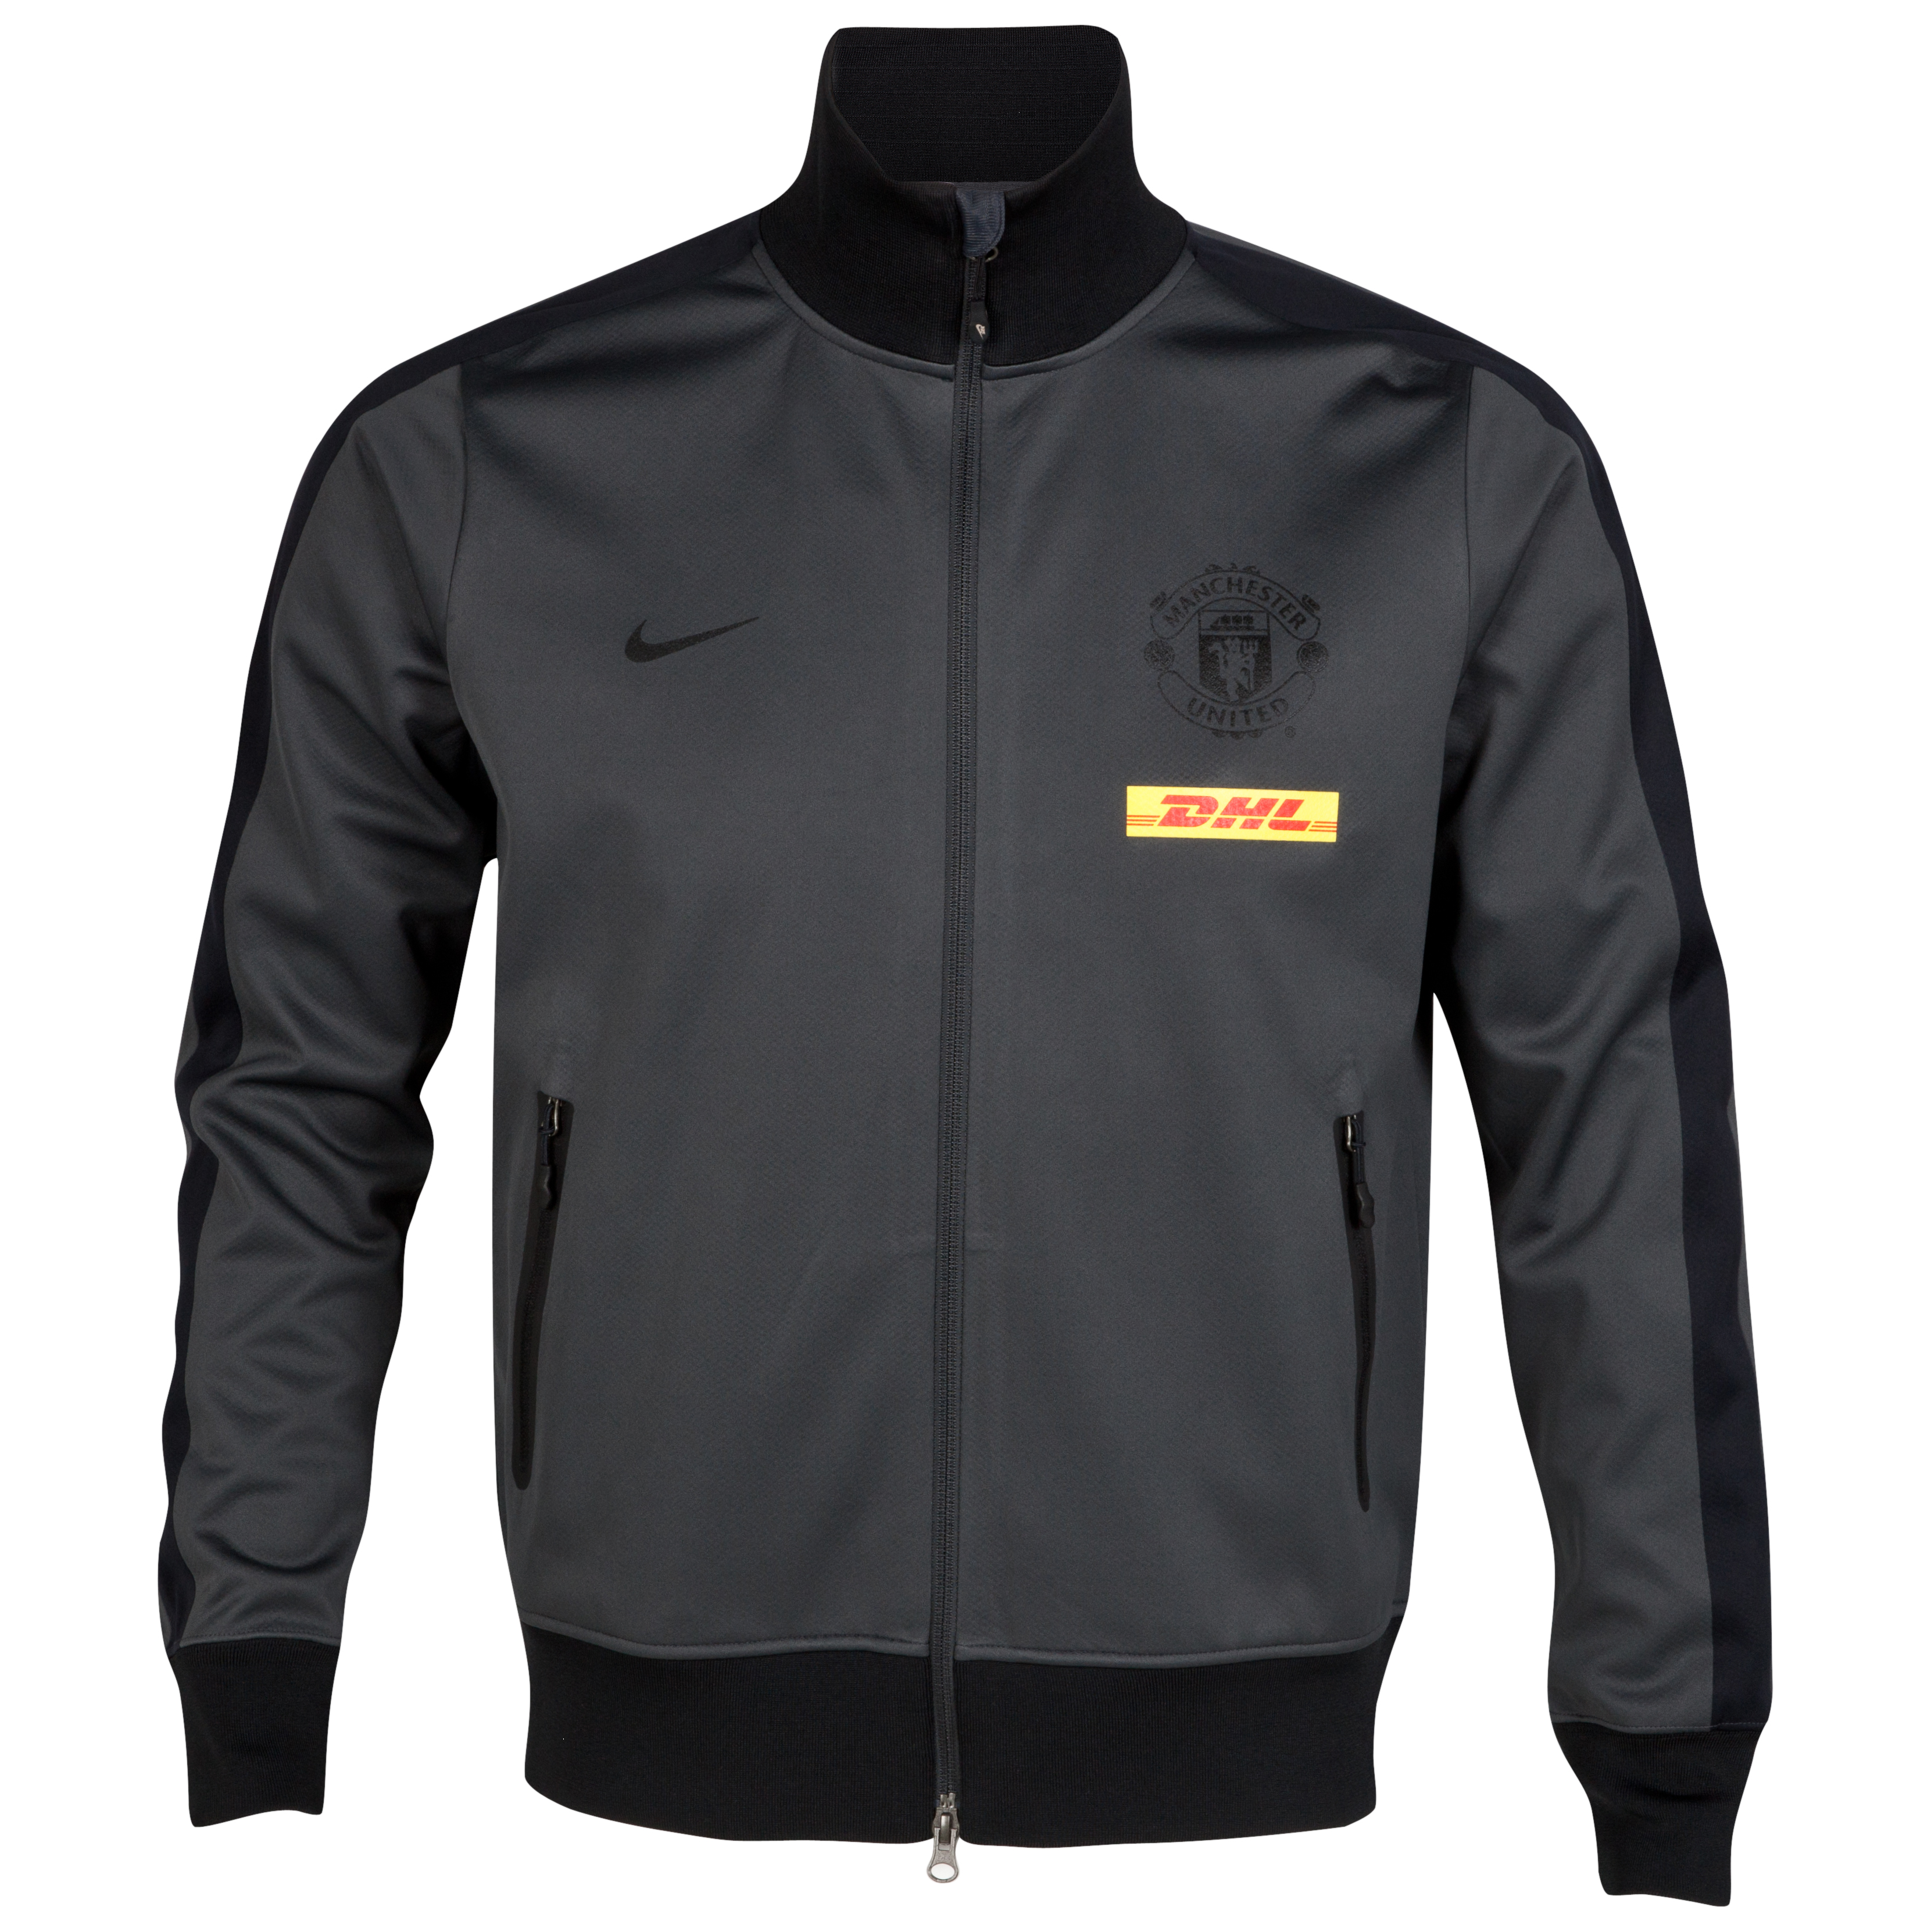 Manchester United Authentic N98 Jacket - Anthracite/Black/Black/Black